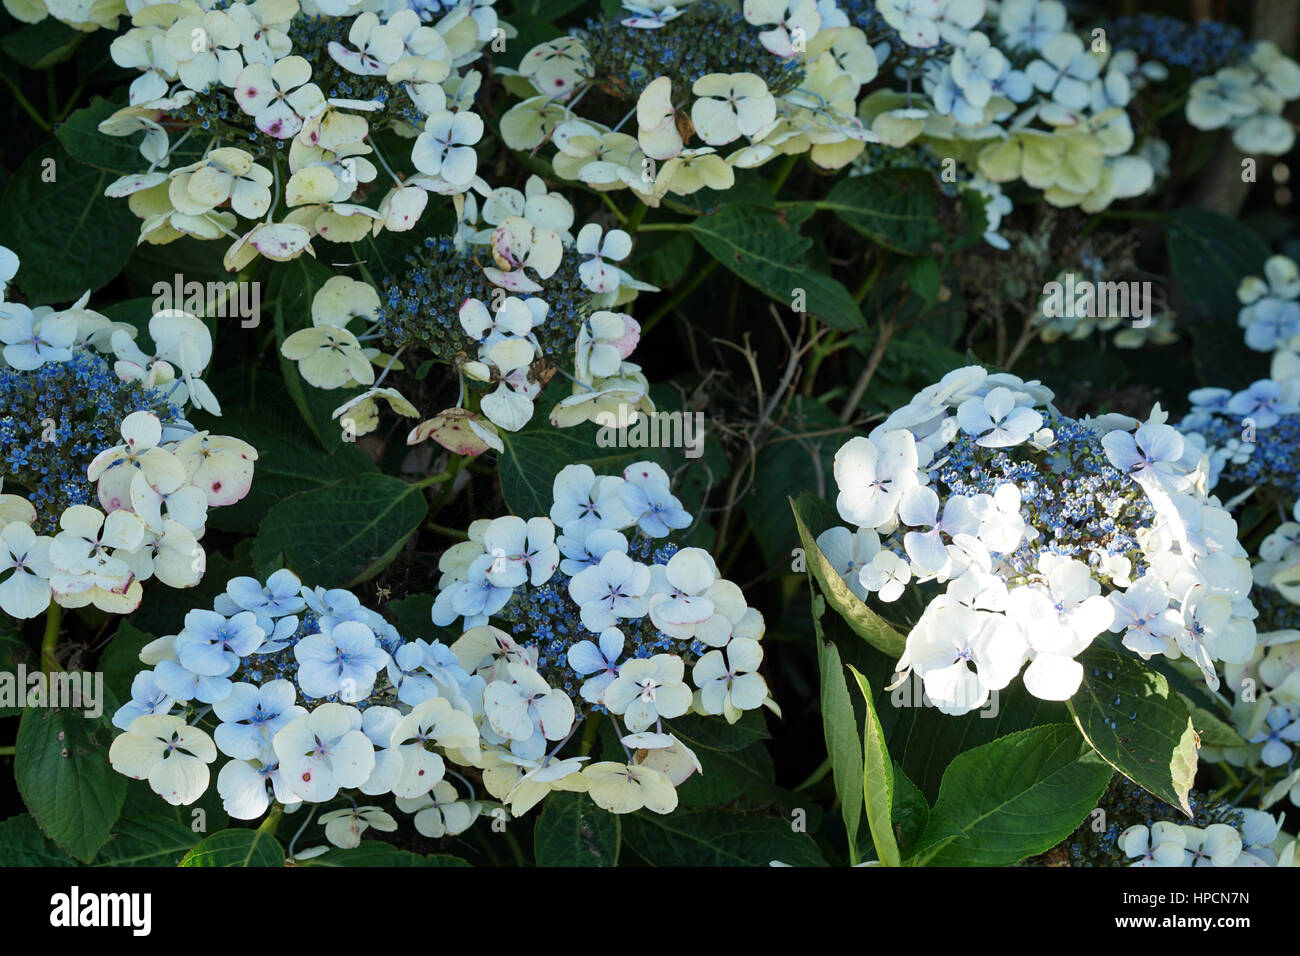 Blue flowering bush stock photos blue flowering bush stock images pale blue hydrangea flowers and bush in the garden stock image izmirmasajfo